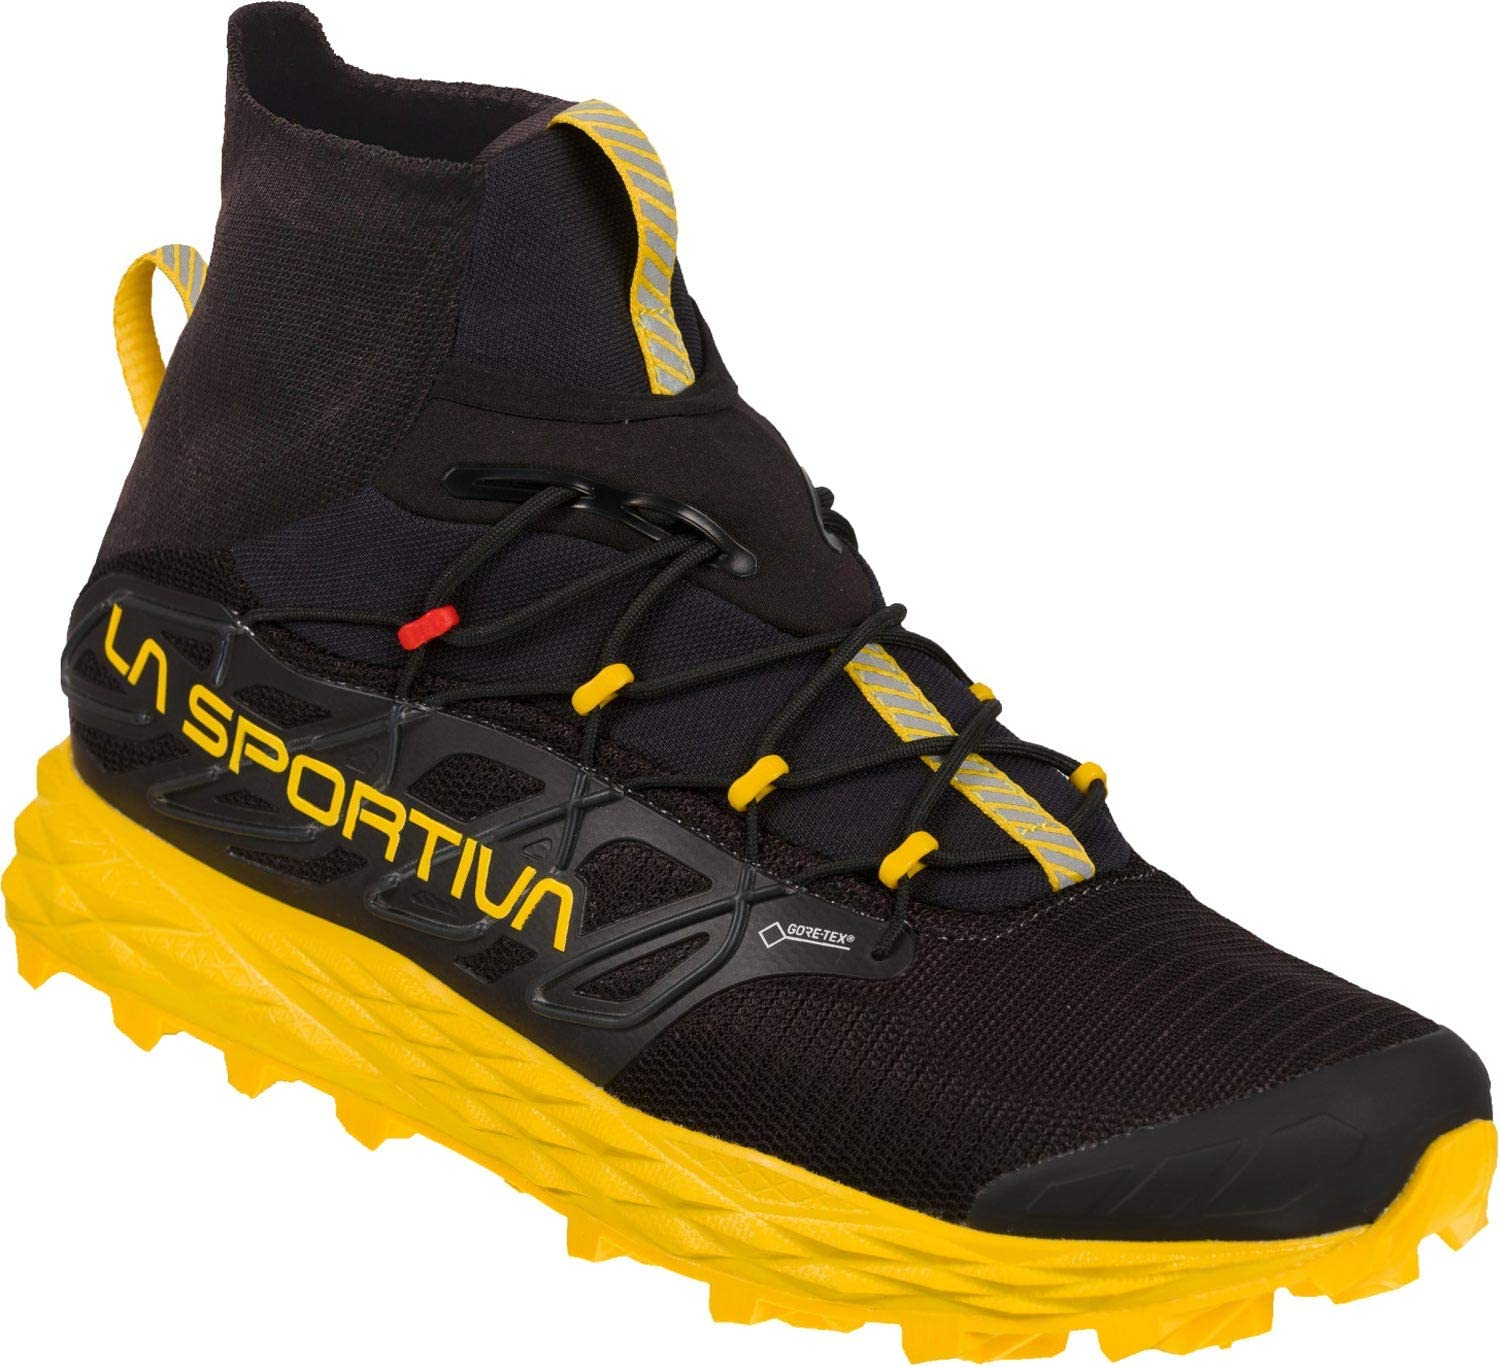 La Sportiva Blizzard GTX Zapatillas de Trail Running: Amazon.es: Zapatos y complementos